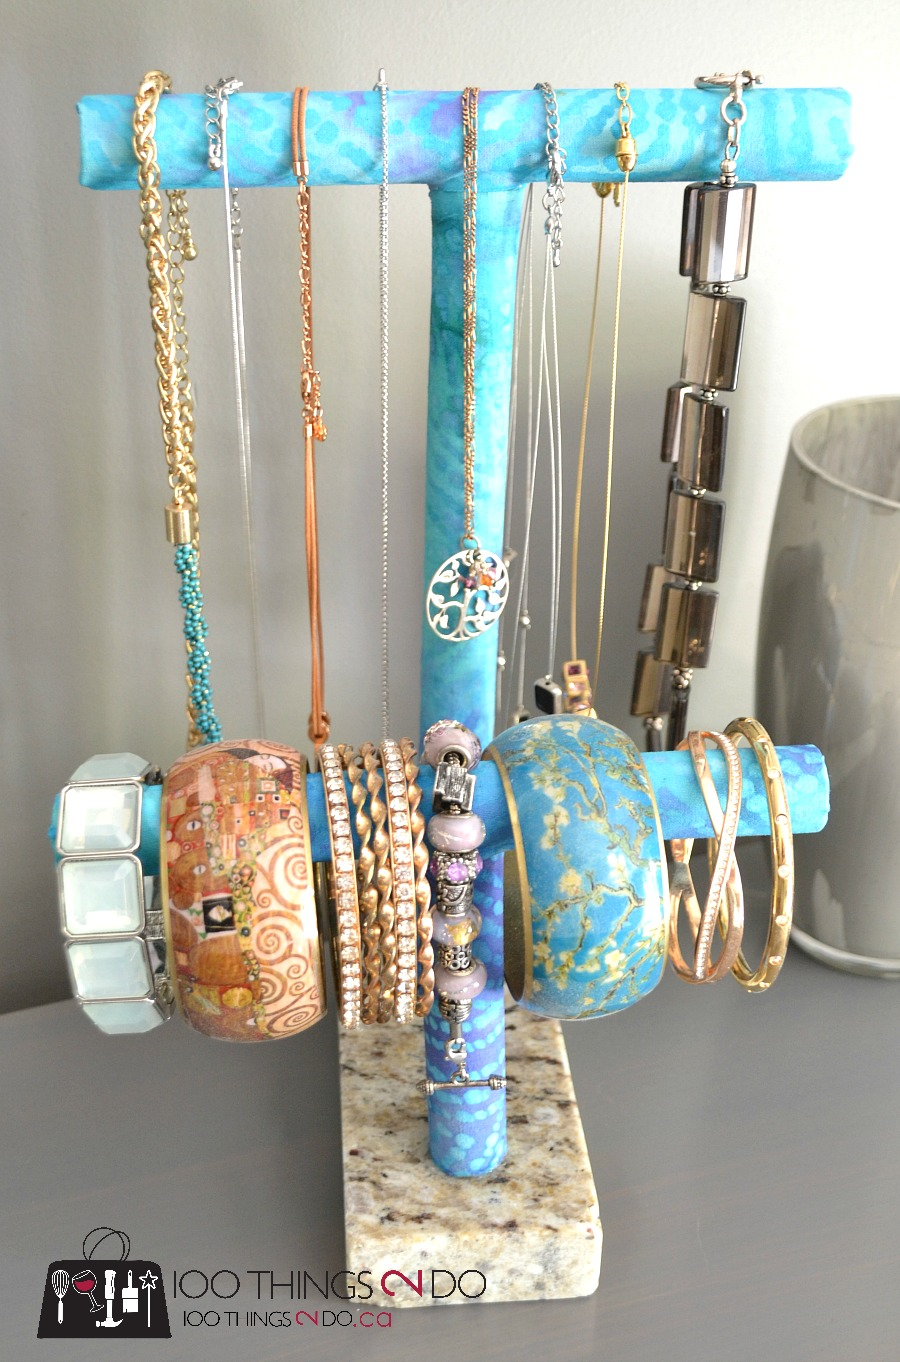 DIY Jewelry Holder PVC Pipe Project 100 Things 2 Do